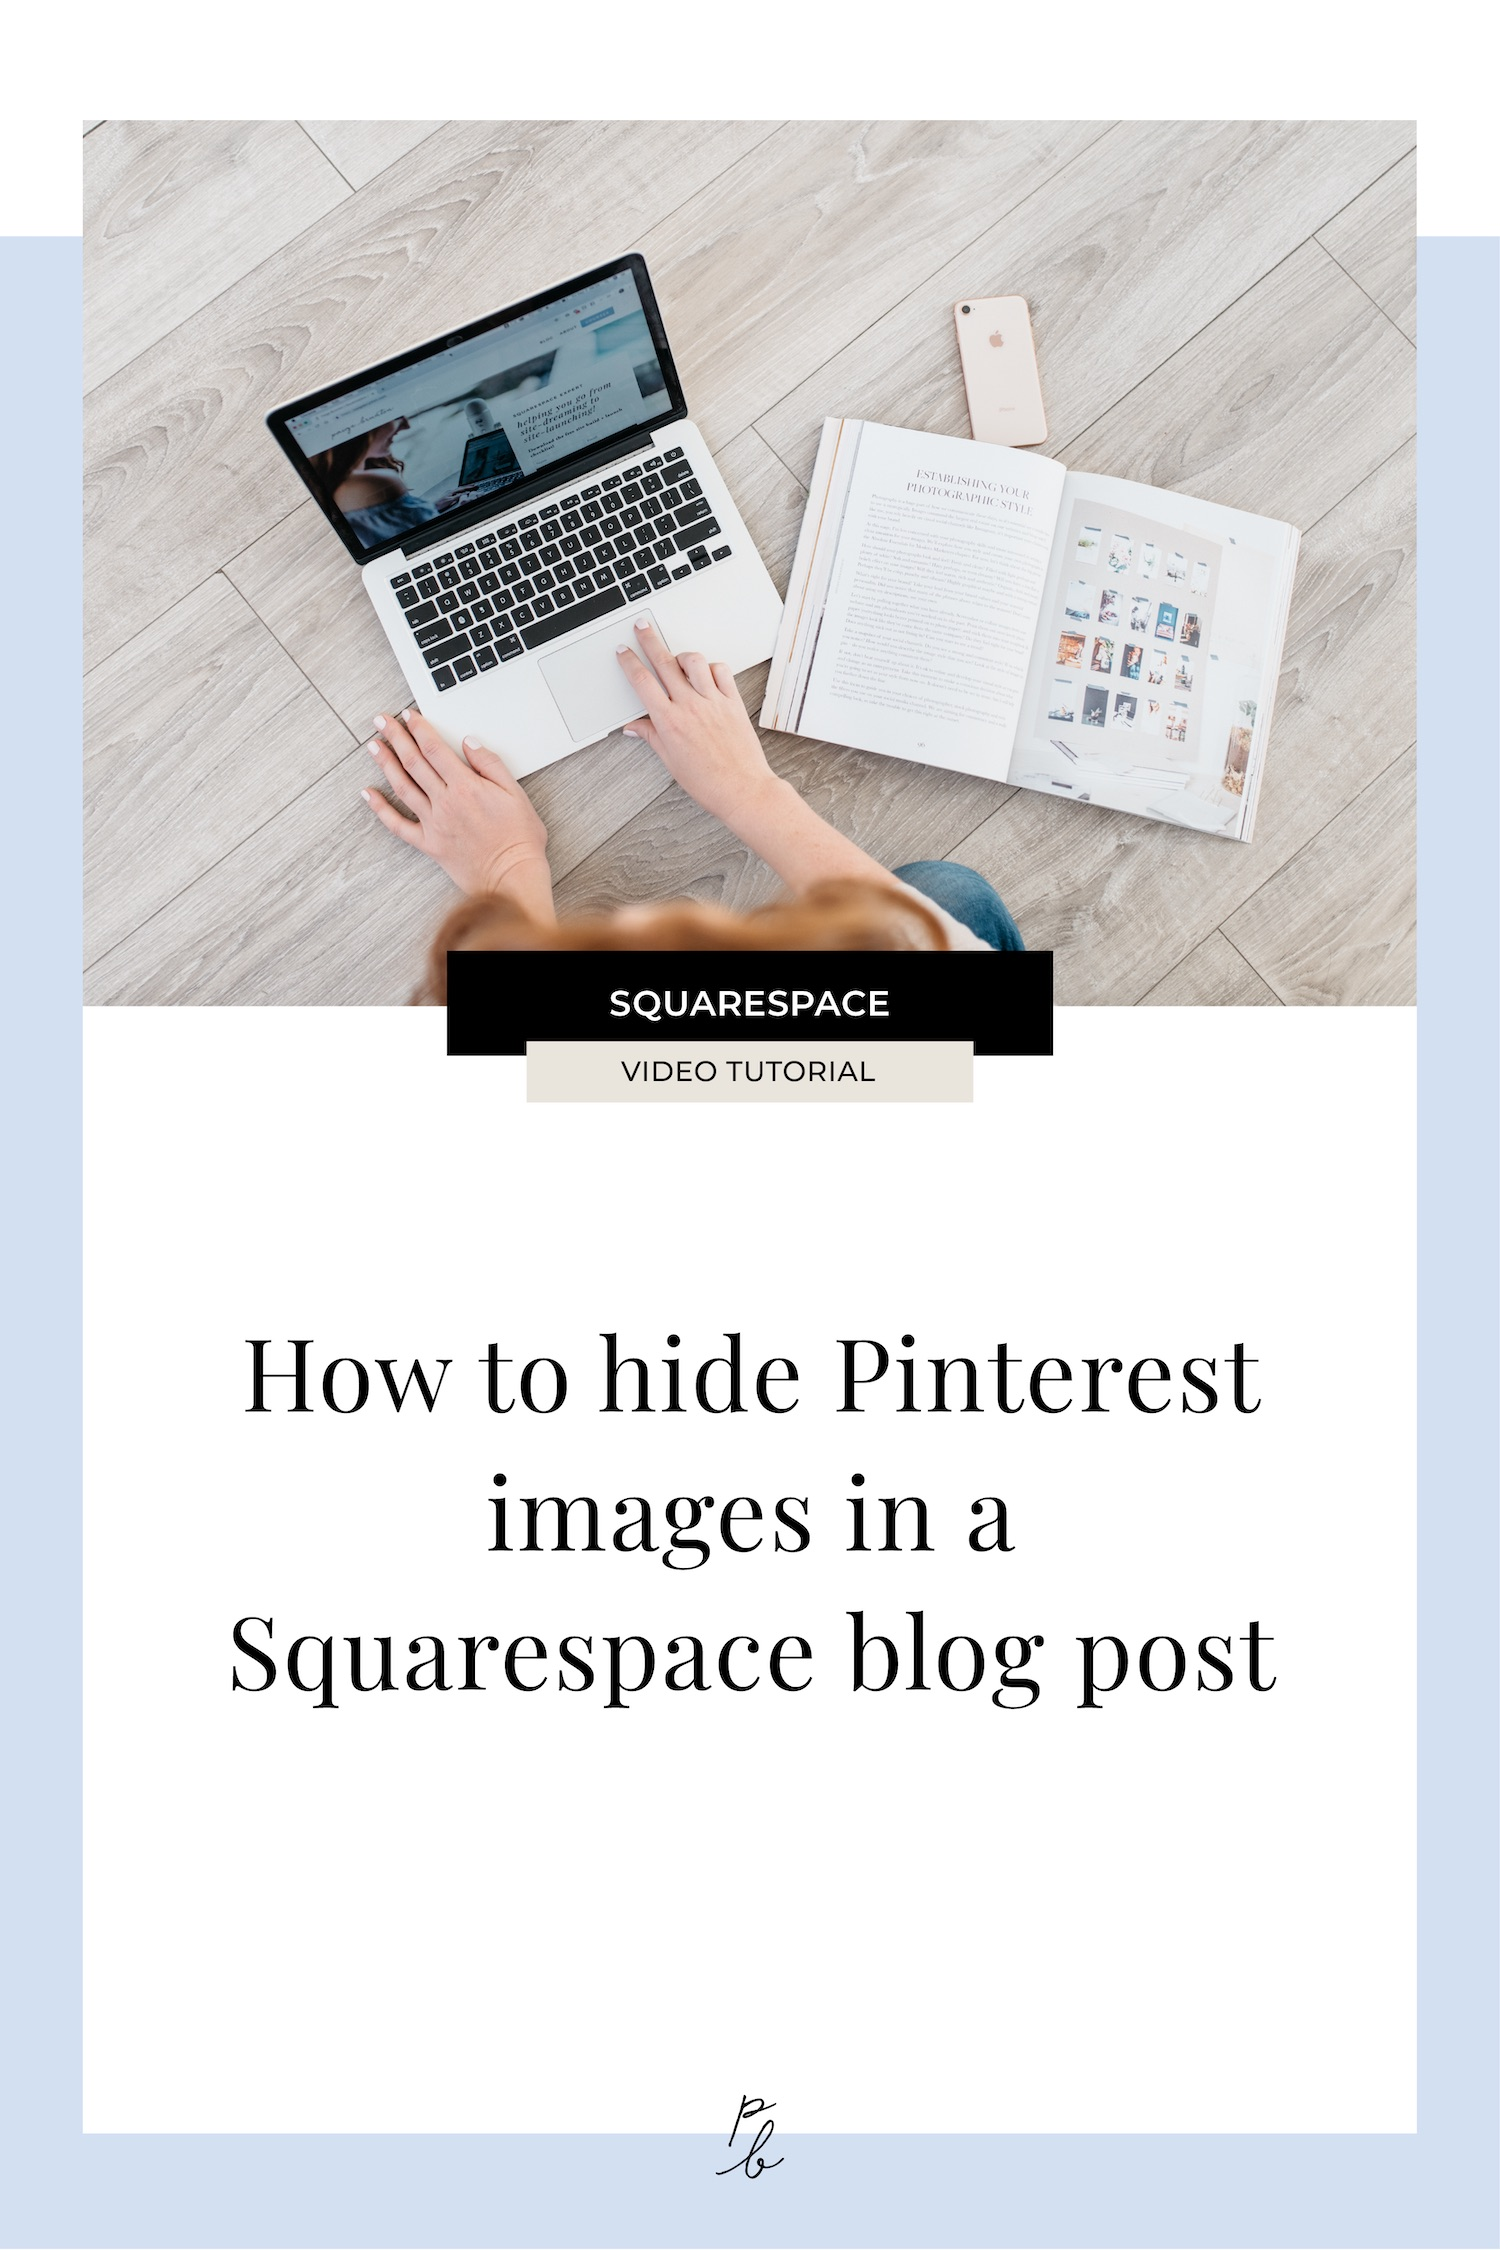 How to hide Pinterest images in a Squarespace blog post